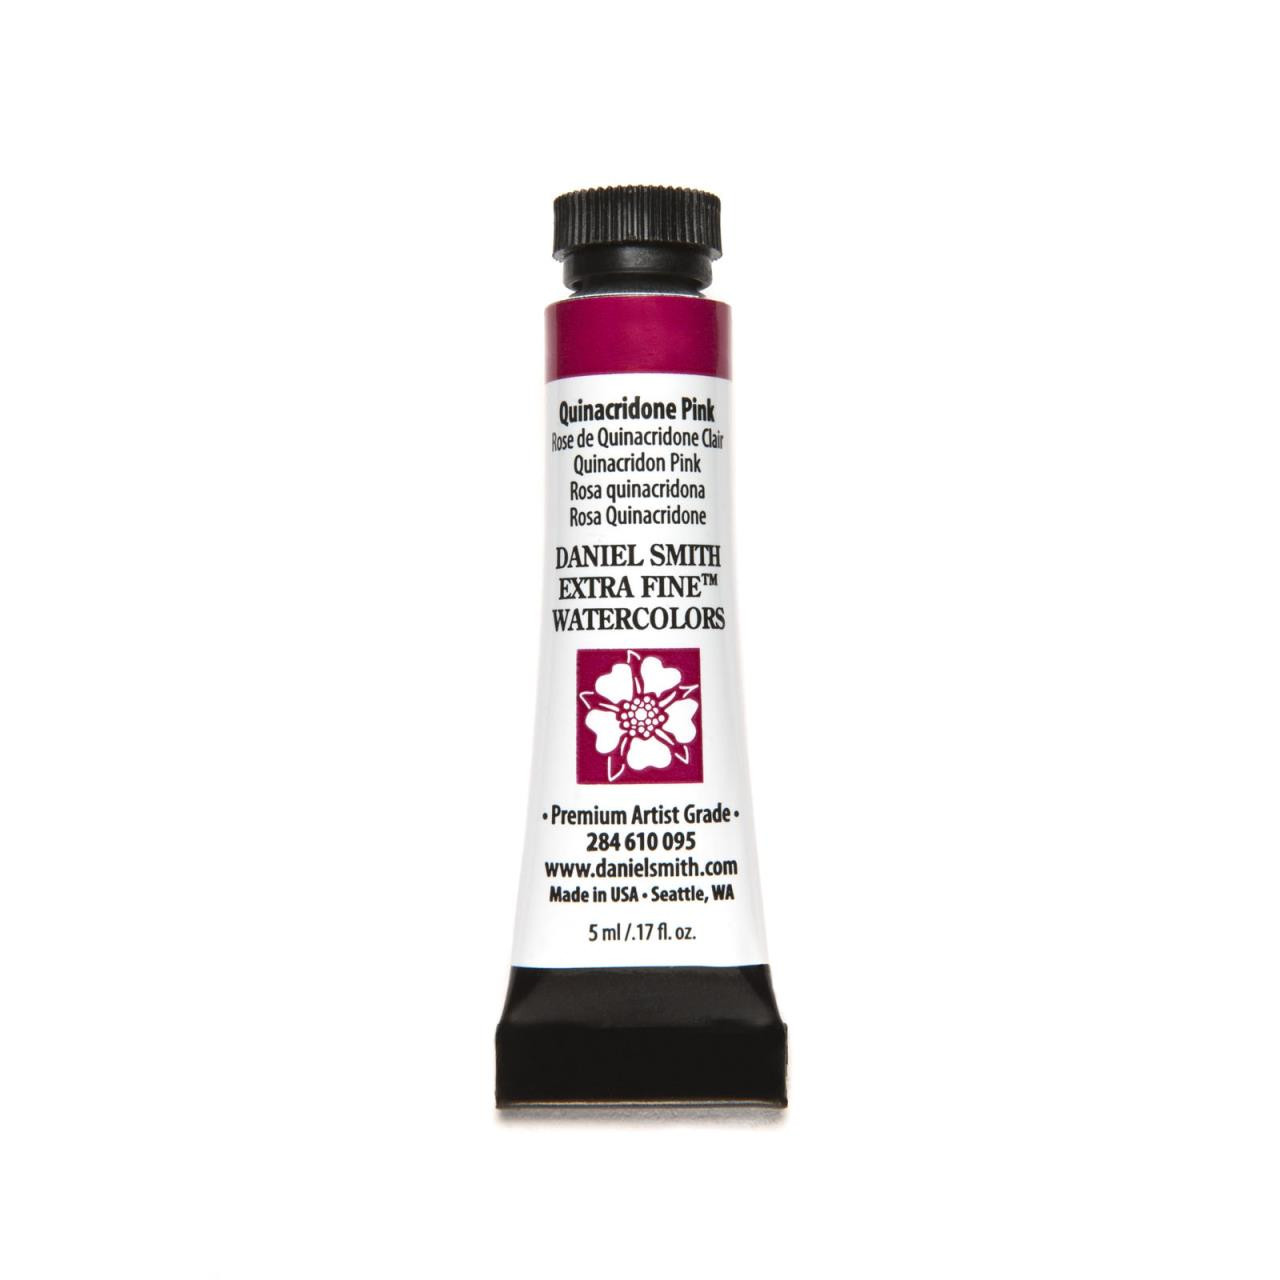 Quinacridone Pink, DANIEL SMITH Extra Fine Watercolors 5ml Tubes -